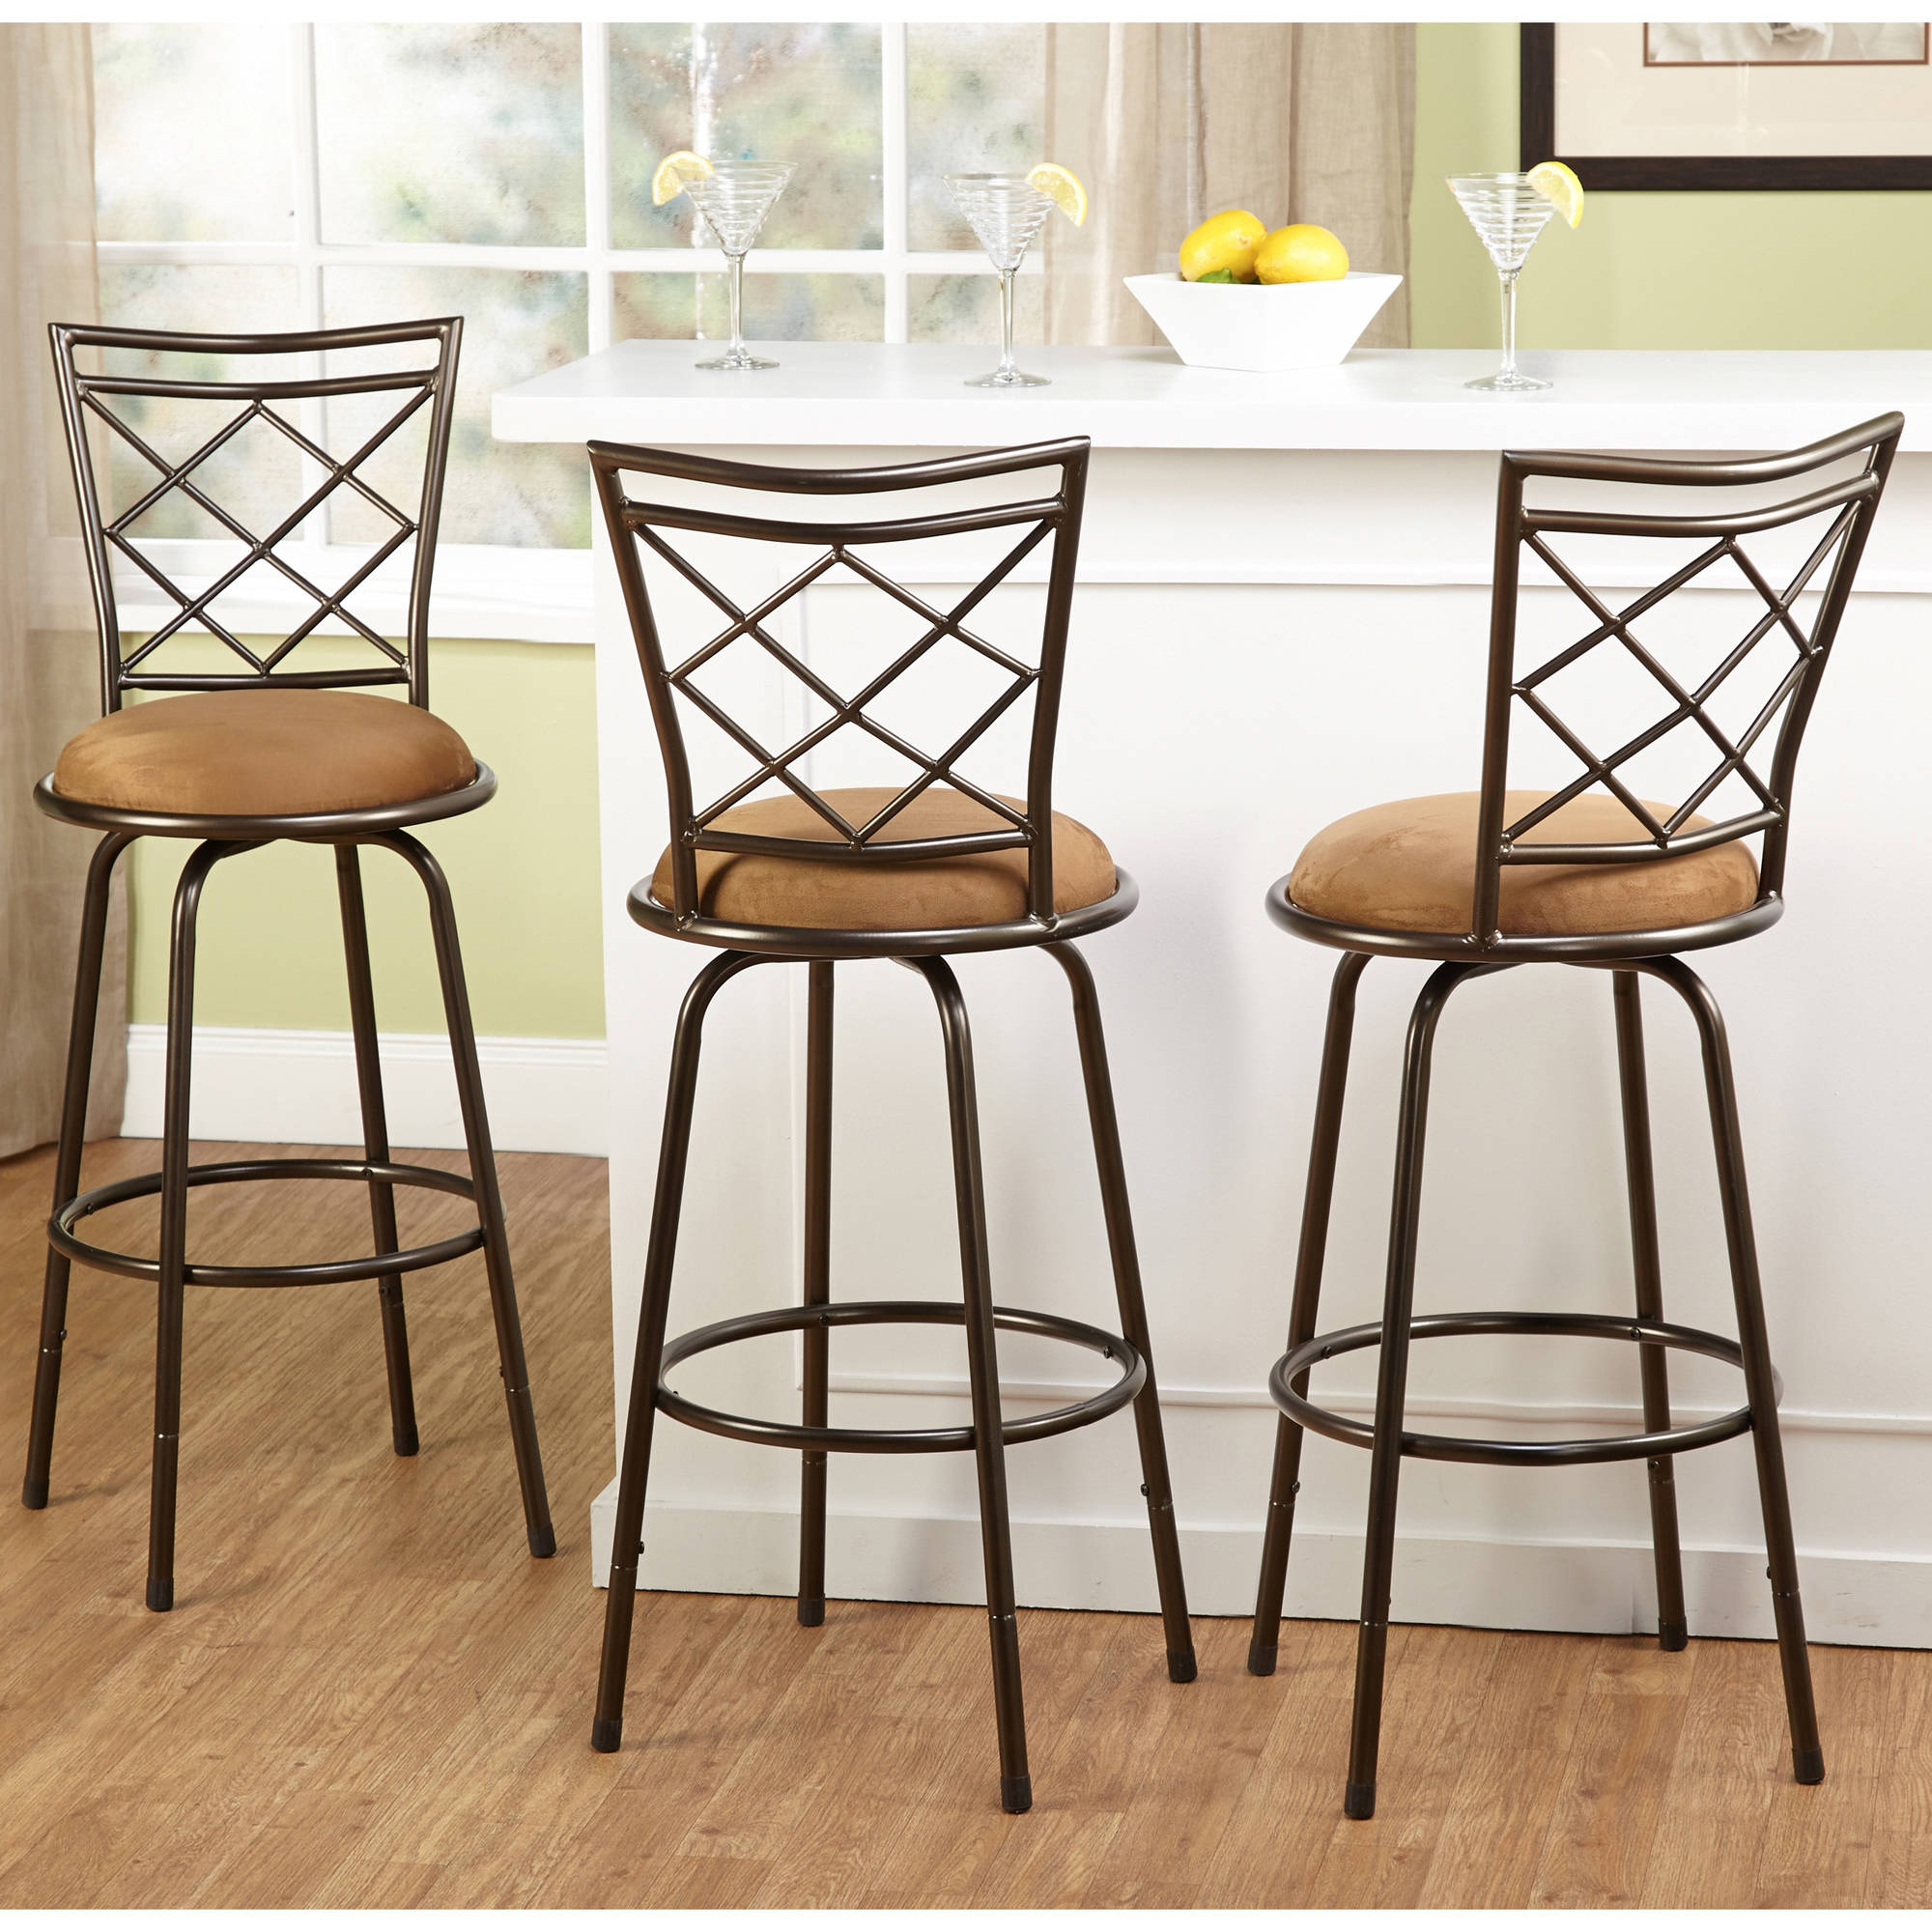 3-Piece Avery Adjustable Height Barstool Multiple Colors - Walmart.com & 3-Piece Avery Adjustable Height Barstool Multiple Colors ... islam-shia.org